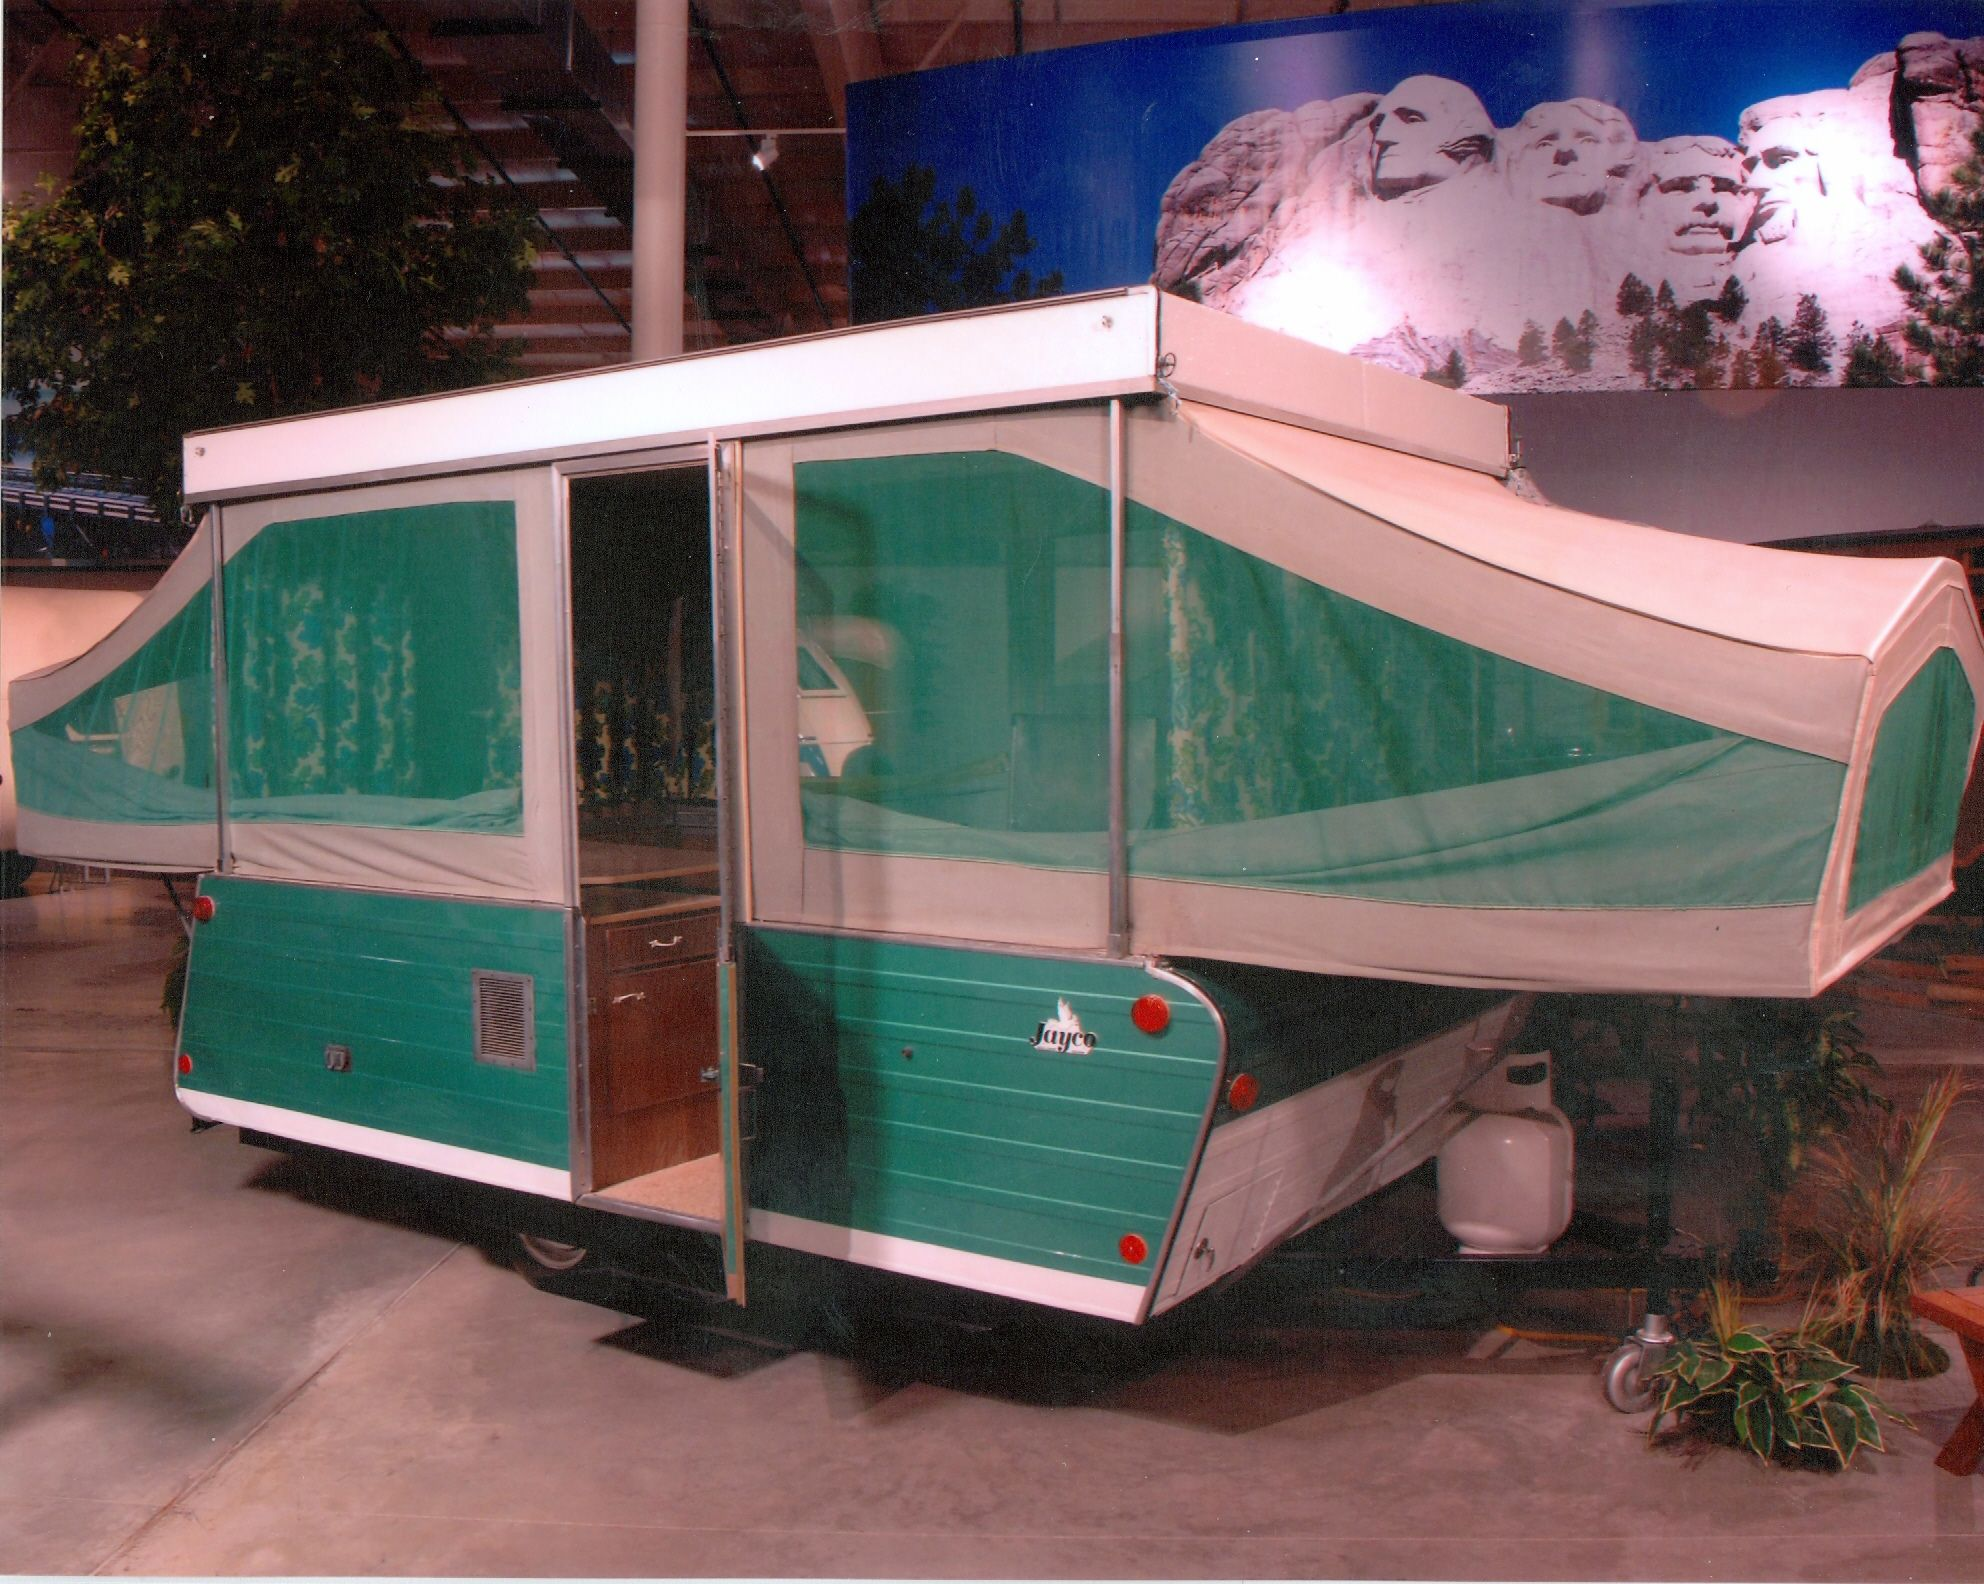 1968 Jayco Tent Trailer Popup Camper Tent Trailer Pop Up Camper